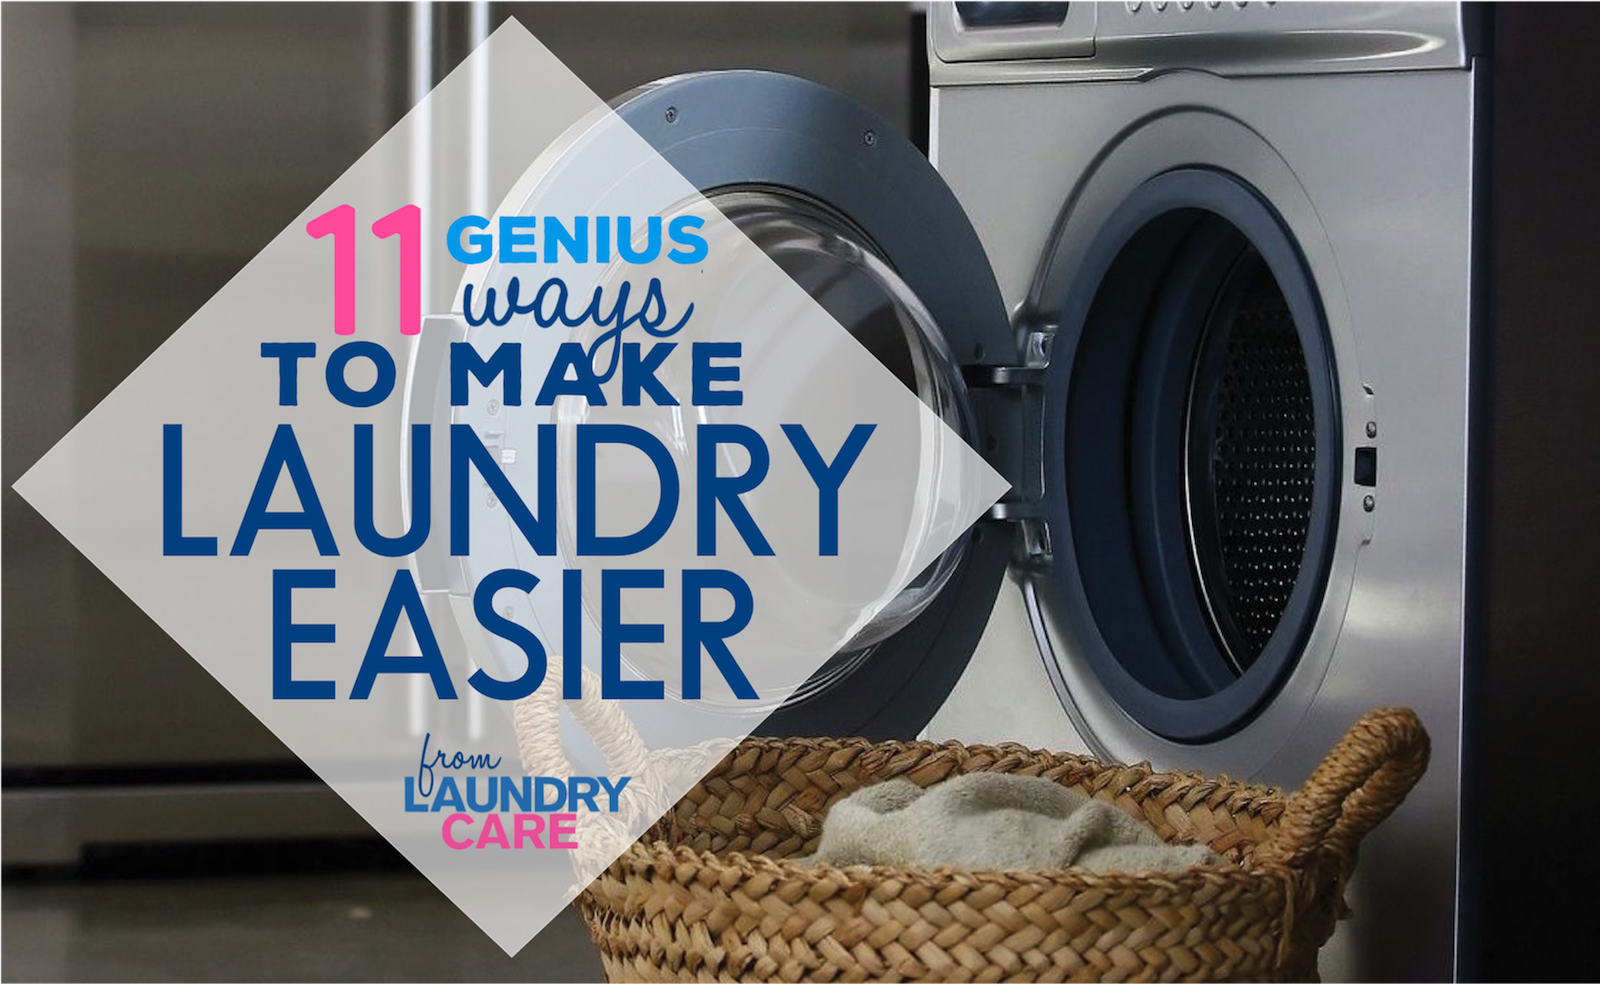 11 ways to make laundry easier